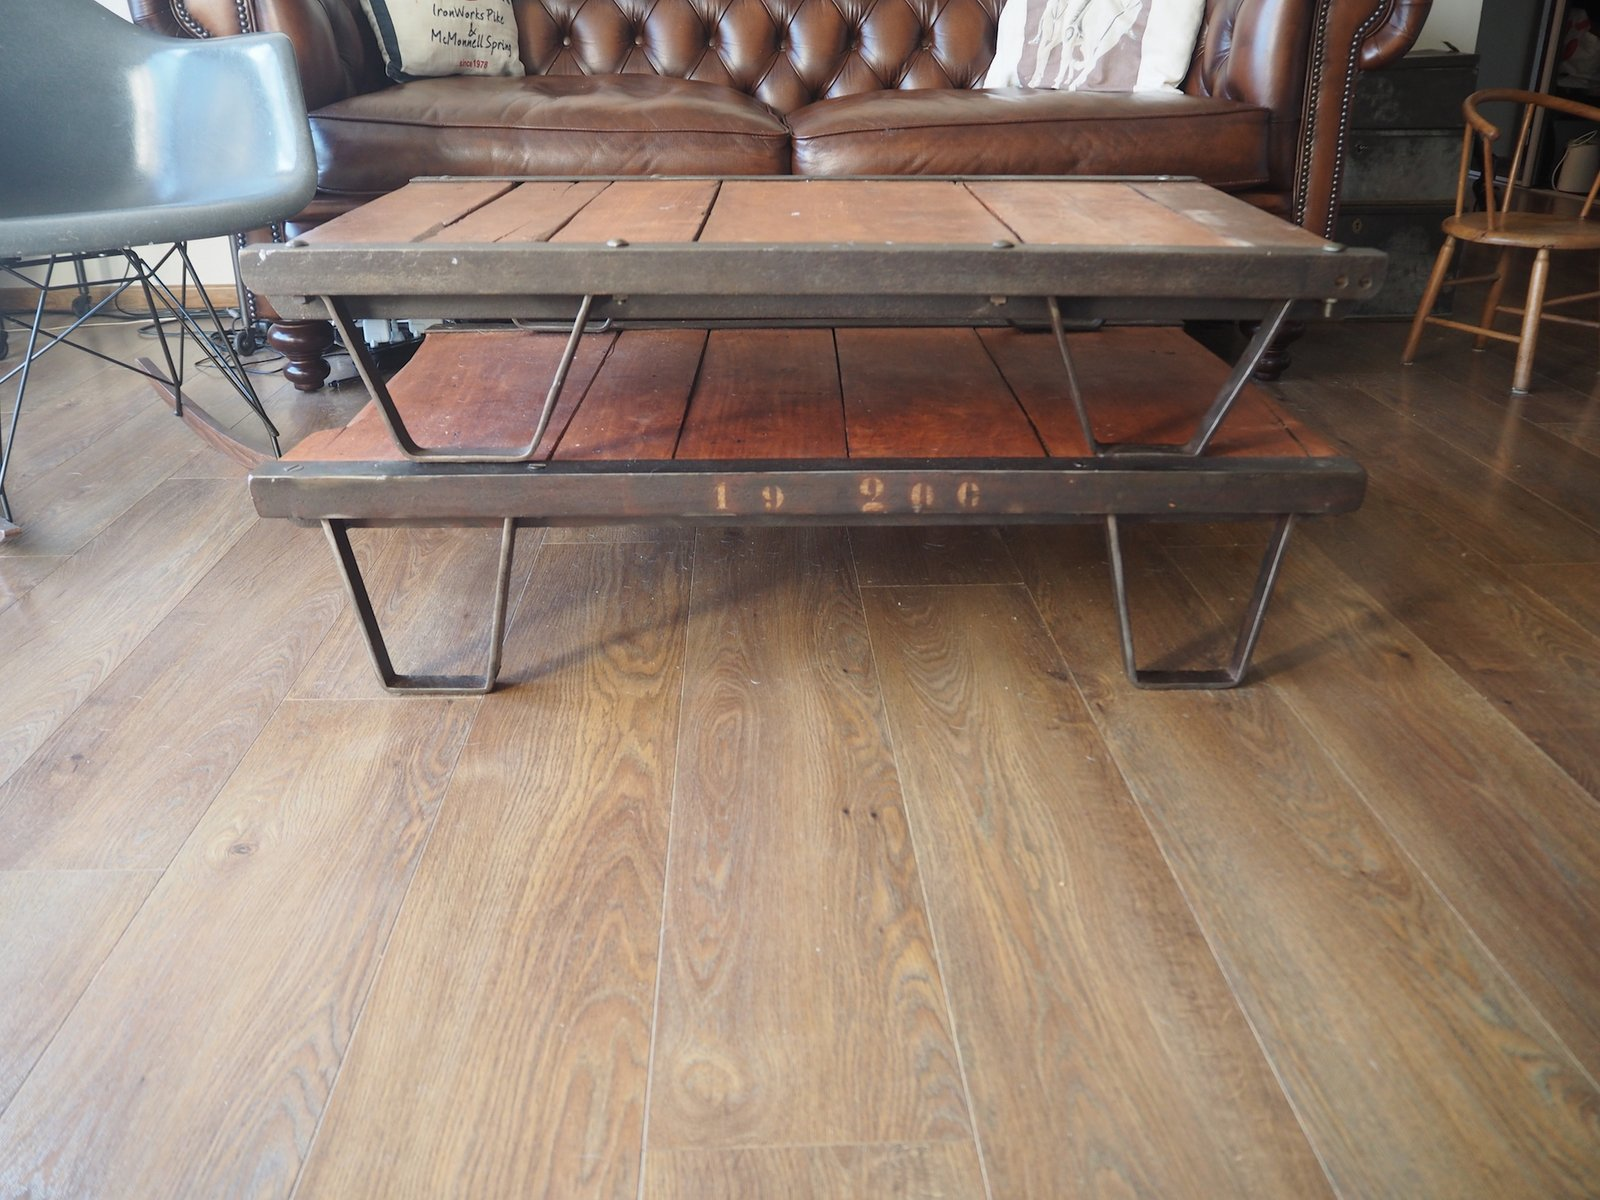 Table basse industrielle palette france 1950s en vente - Table basse palette industrielle vintage ...